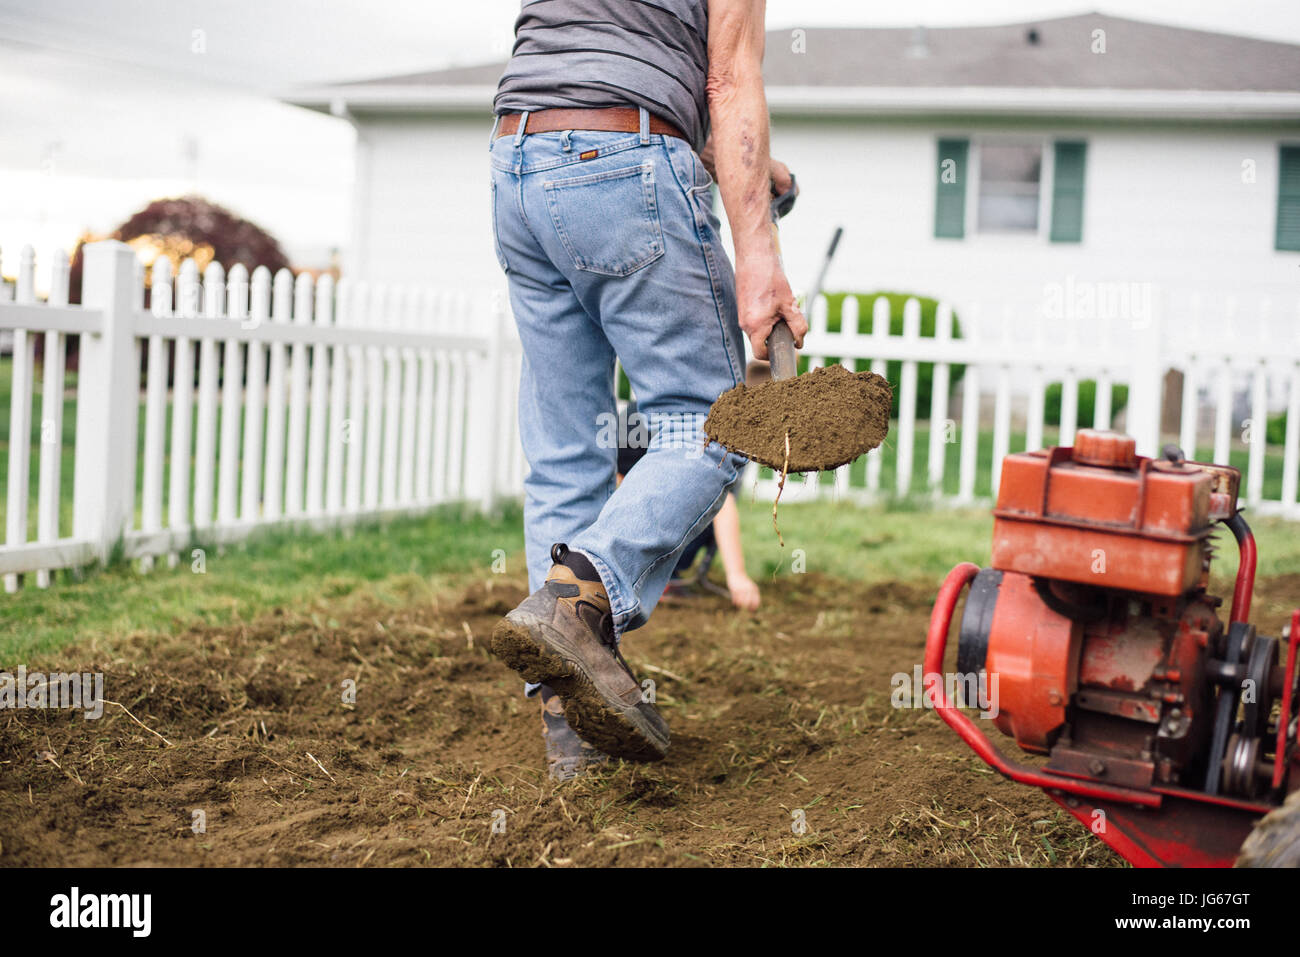 A man shovels dirt in a garden next to a rotatiller. Stock Photo